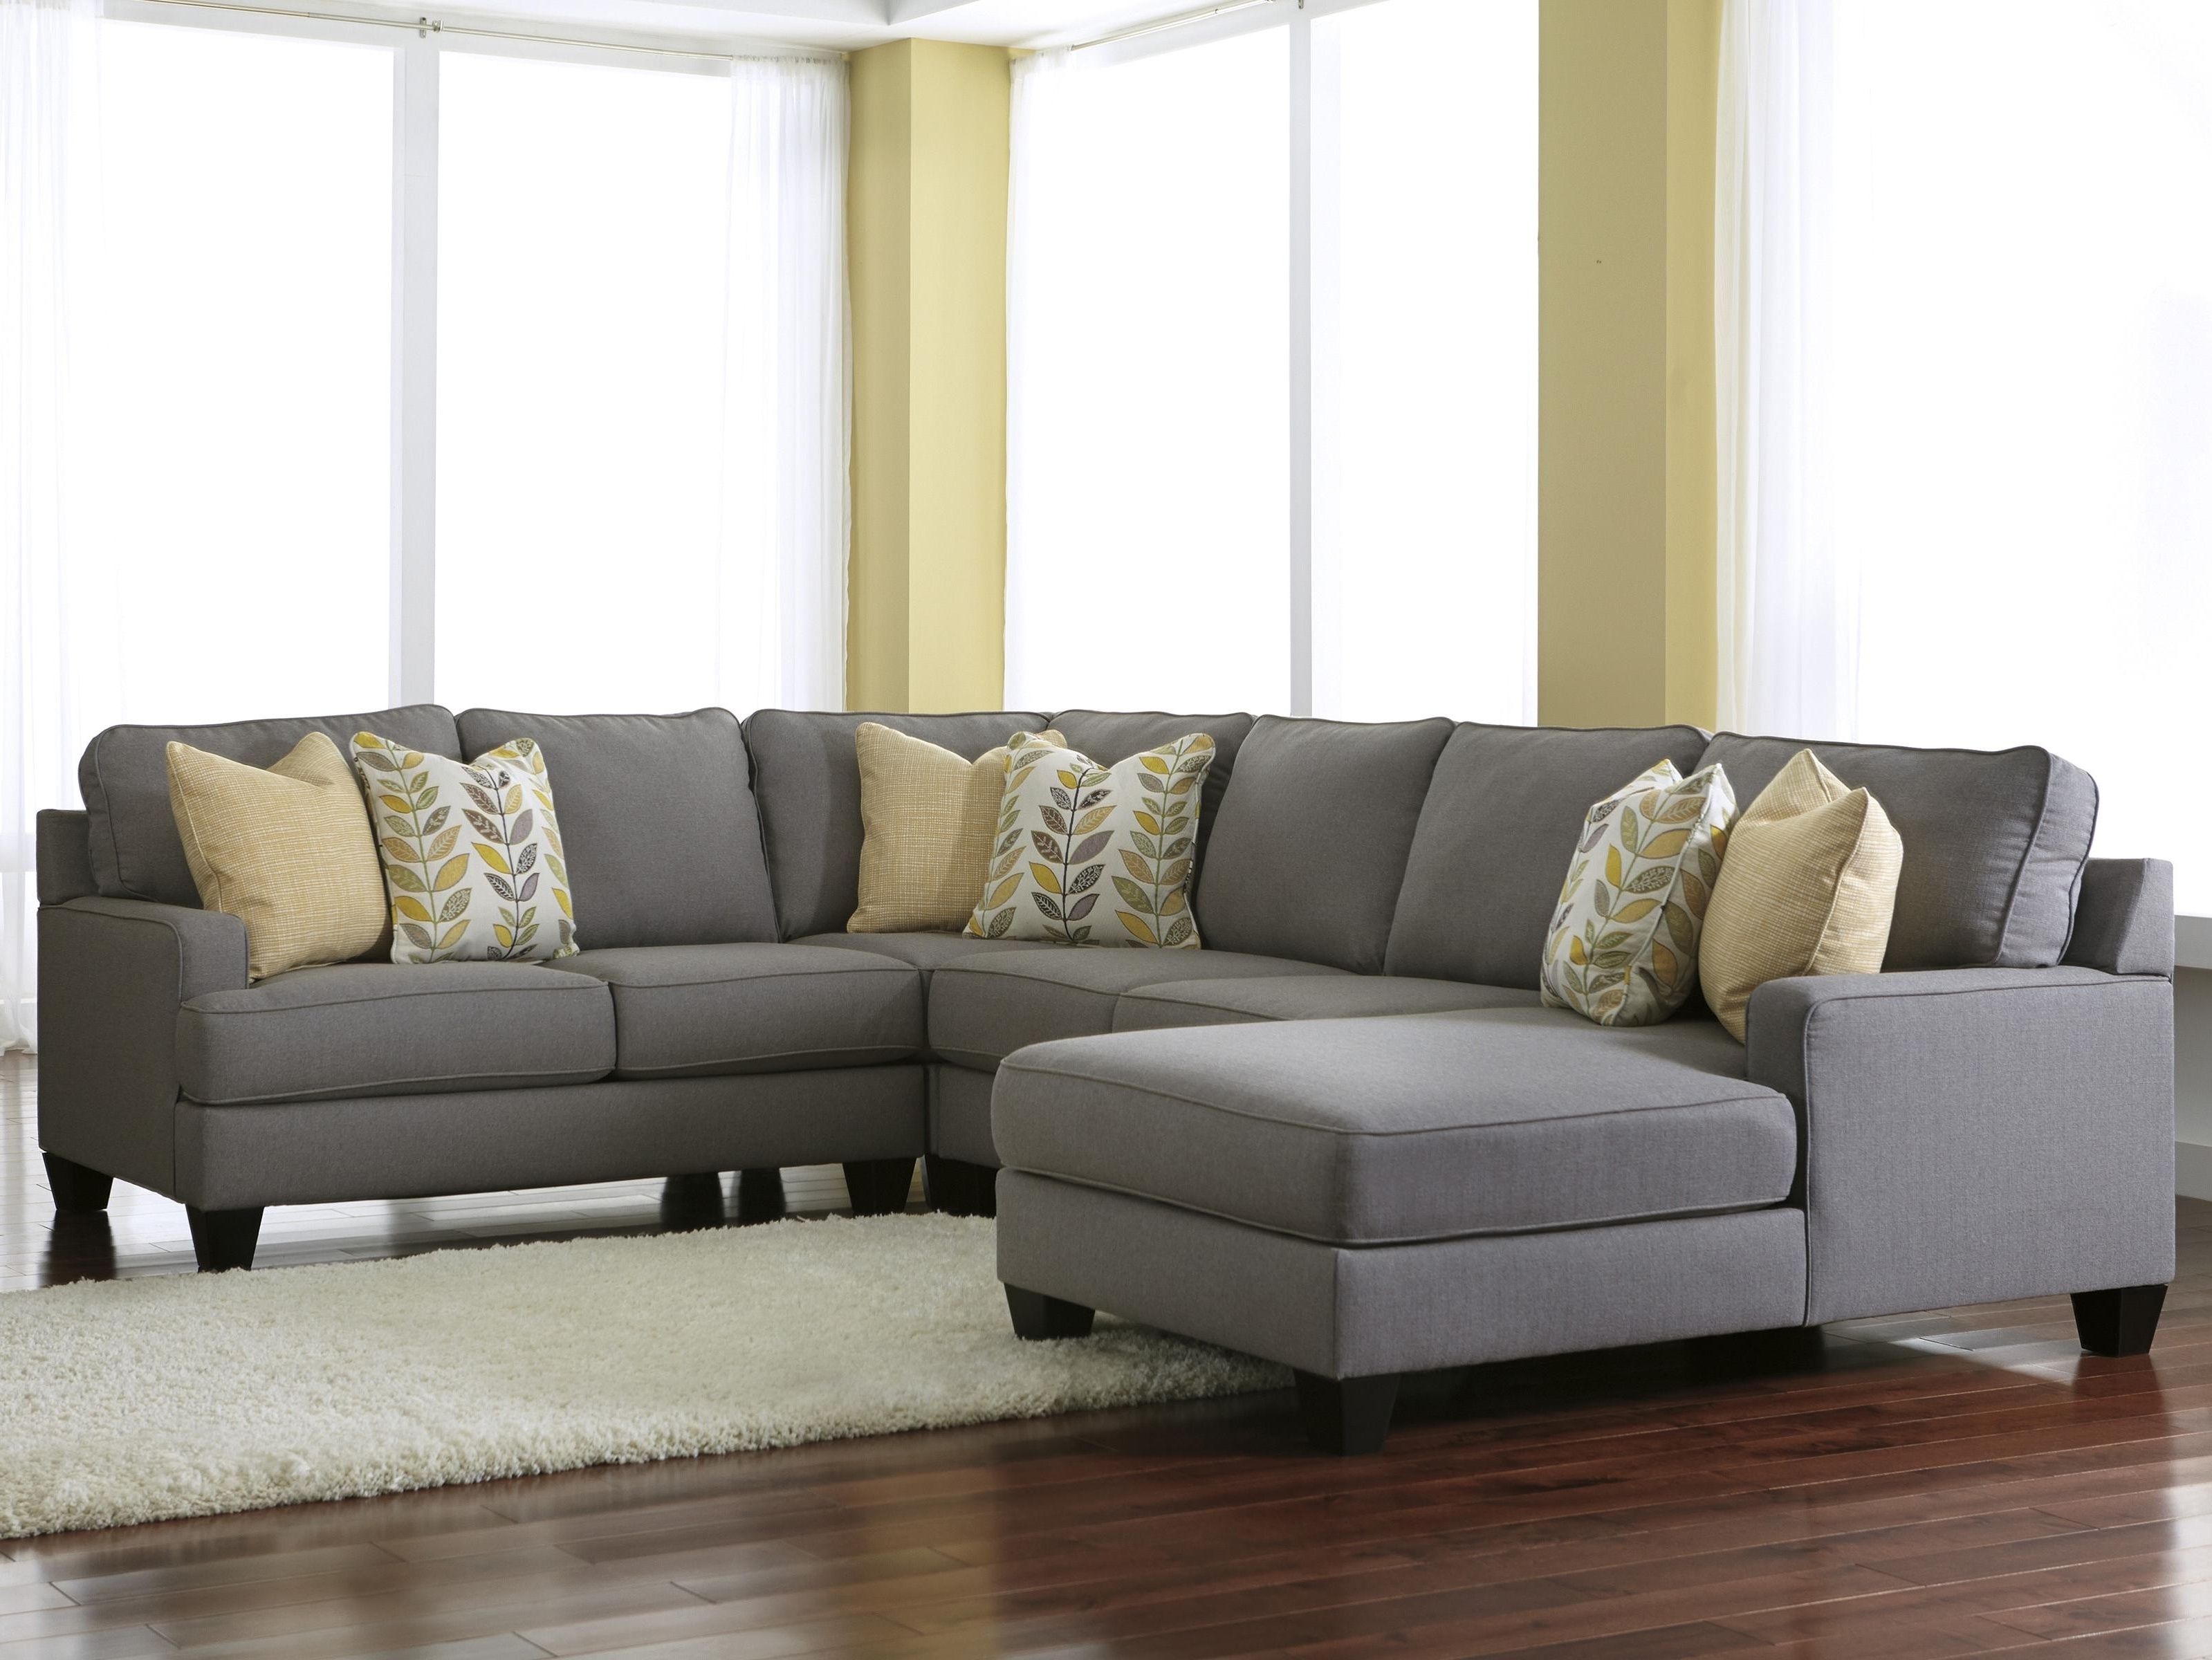 Modern 4 Piece Sectional Sofa With Left Chaise & Reversible Seat Regarding Trendy 2 Seat Sectional Sofas (View 12 of 20)